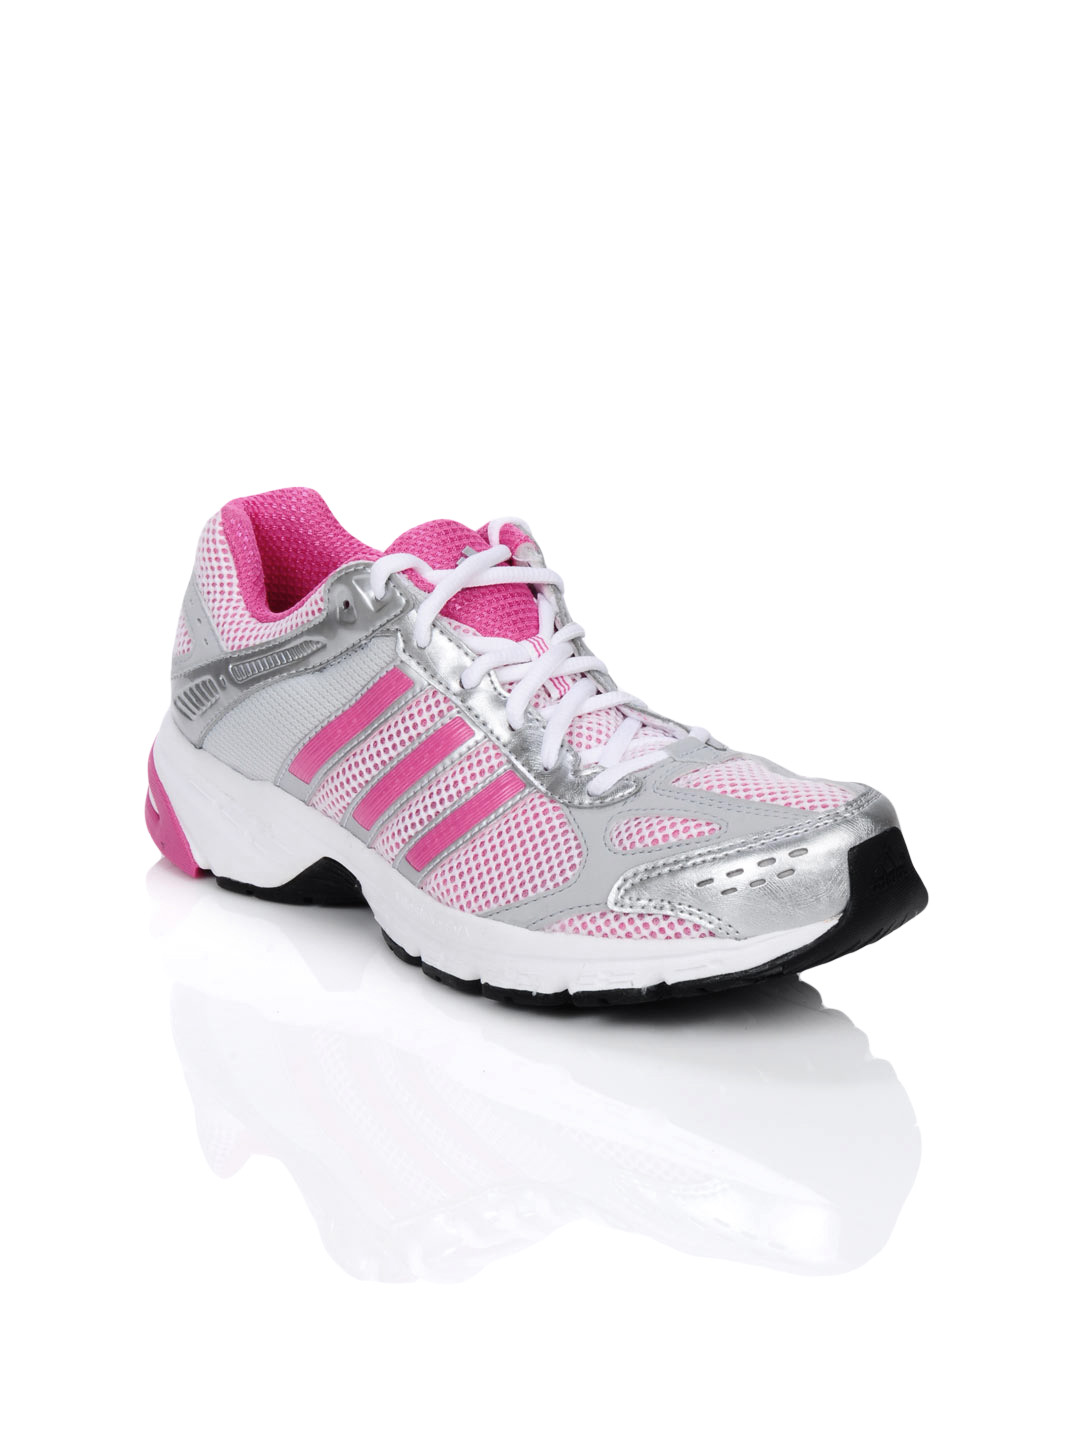 Adidas Women Duramo Pink Sports Shoes